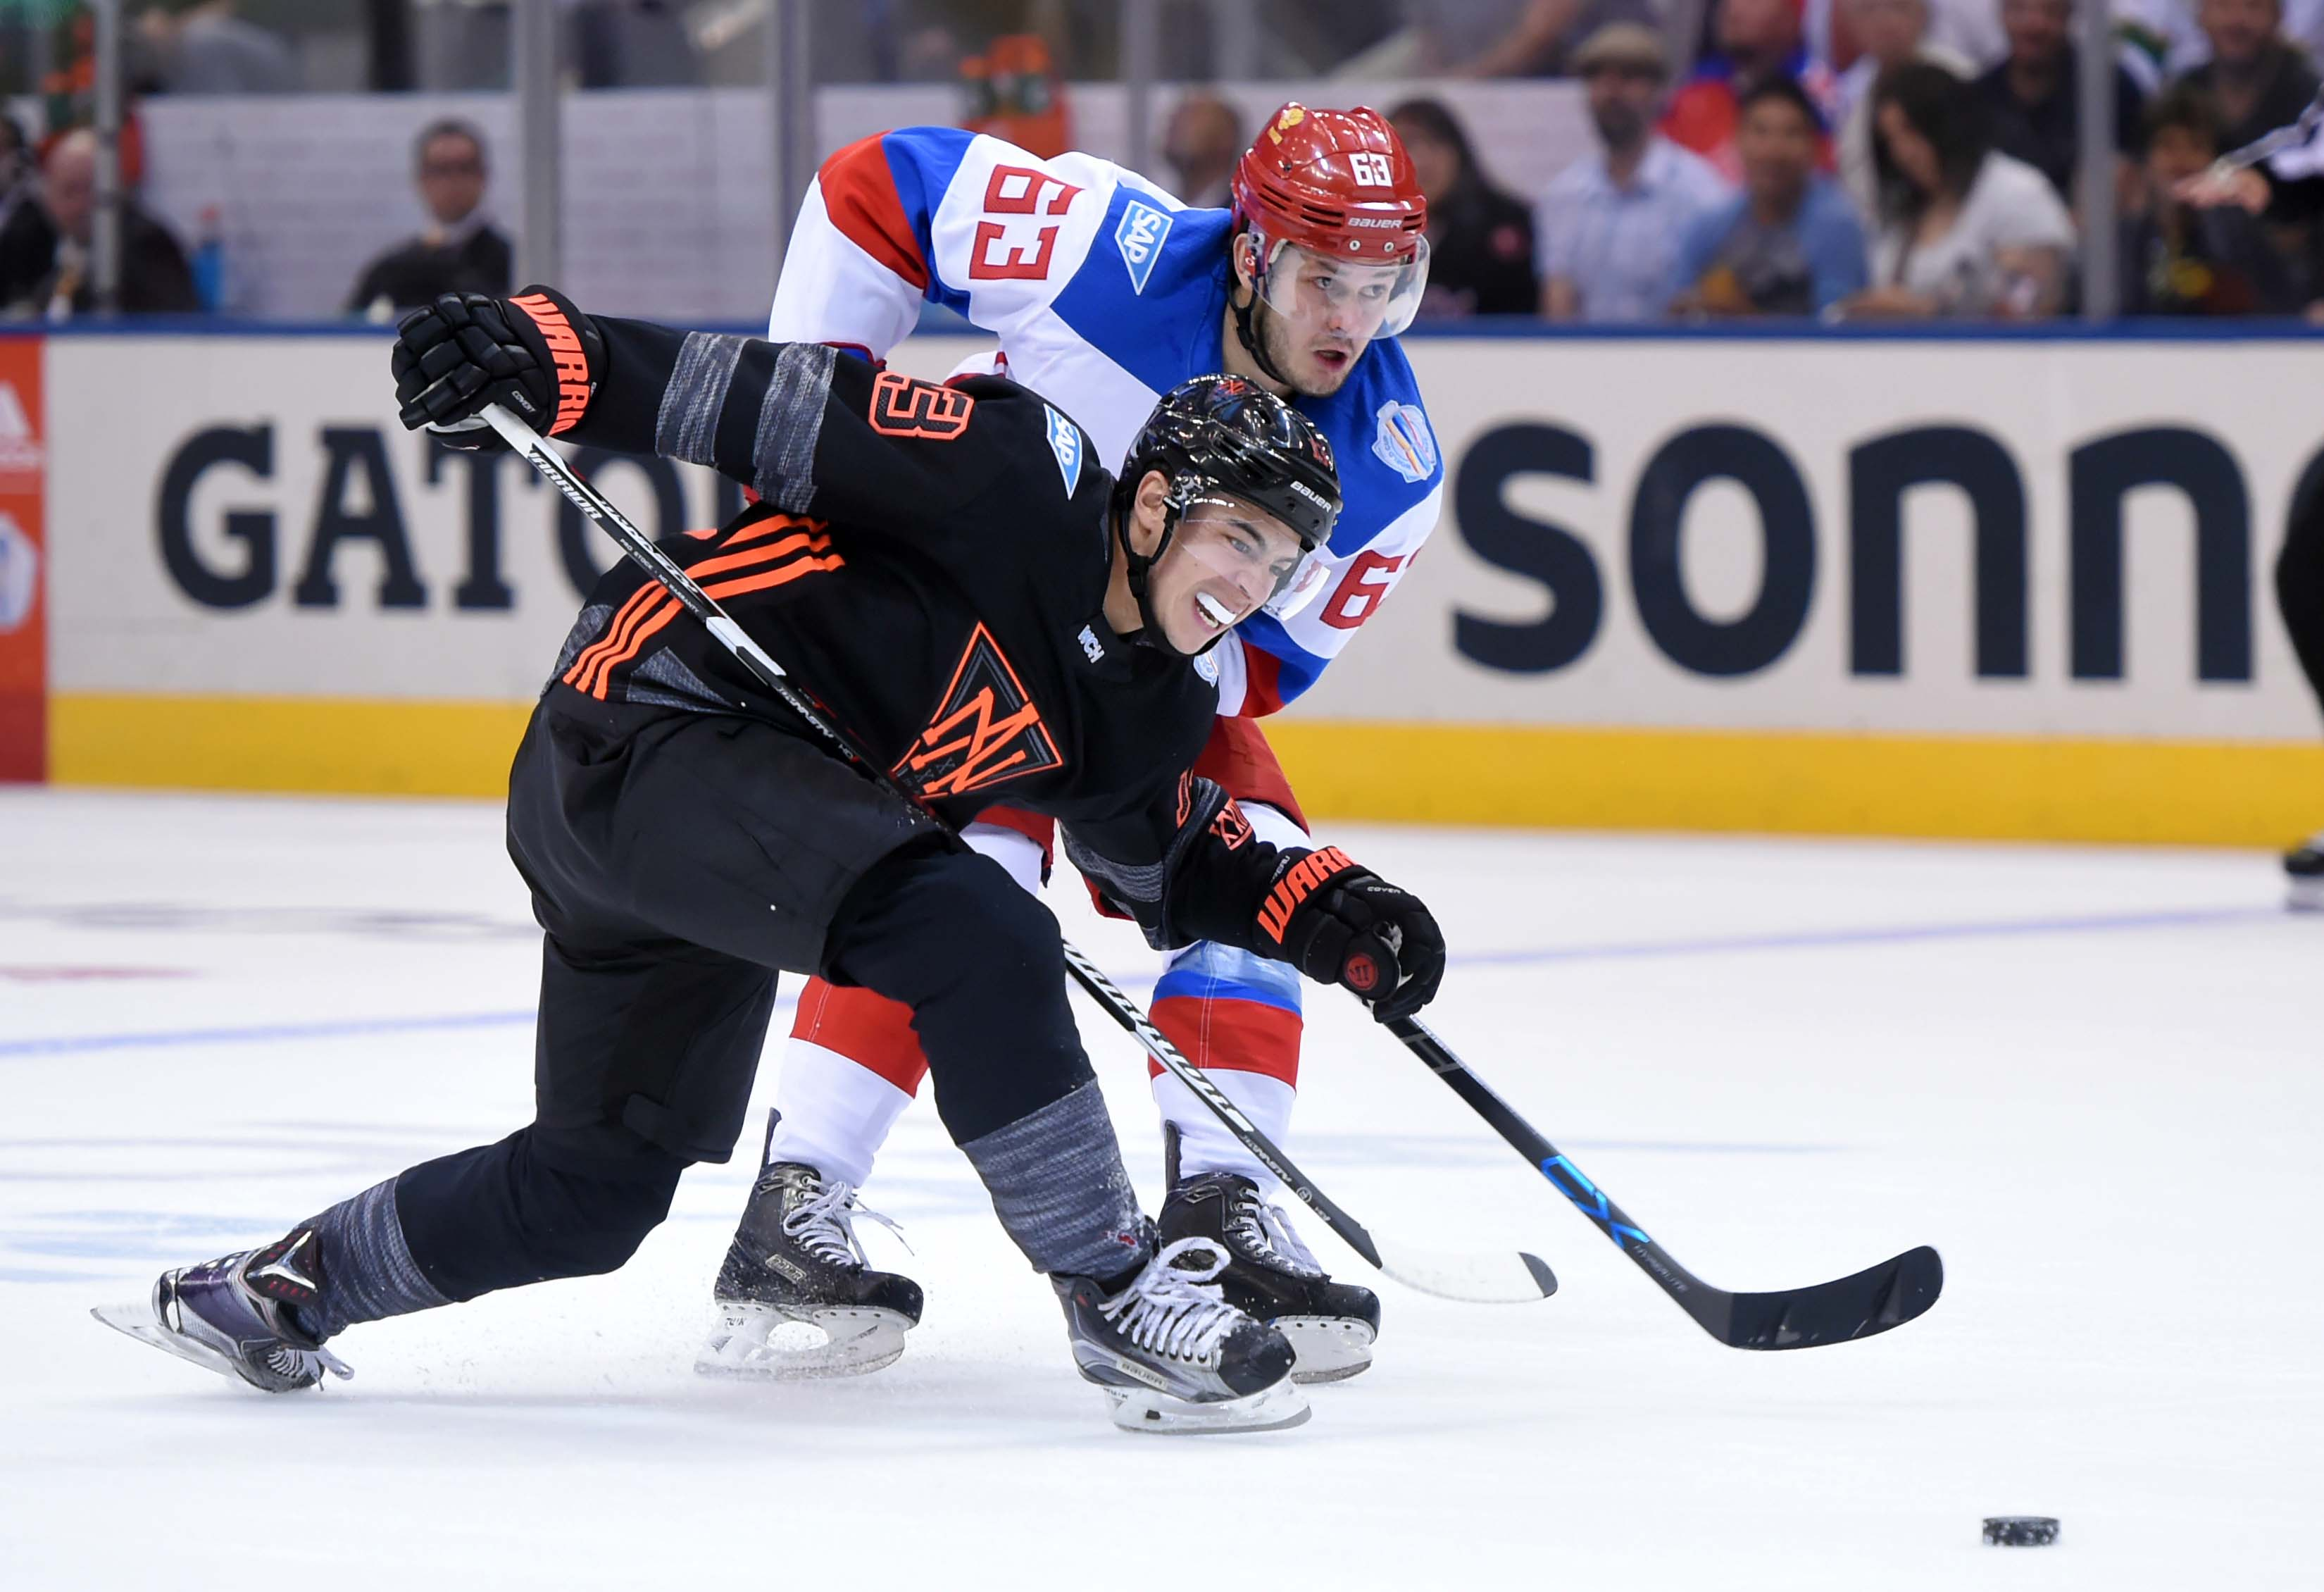 9553825-hockey-world-cup-of-hockey-team-north-america-vs-team-russia